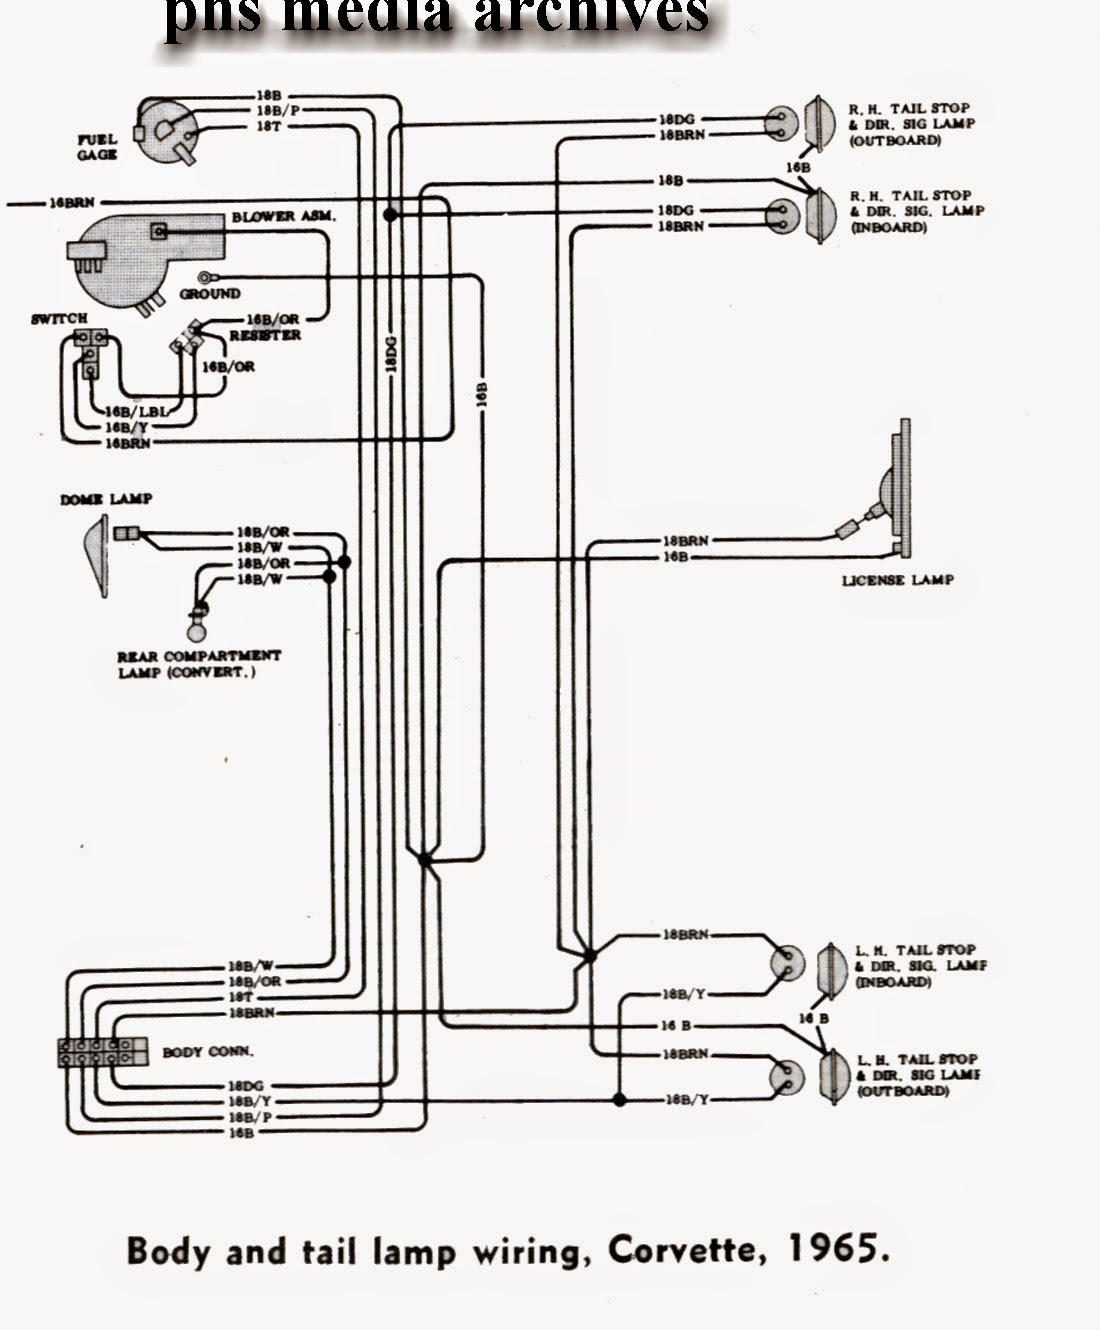 1965 Corvette Wiring Diagram For Tail Best Site Wiring